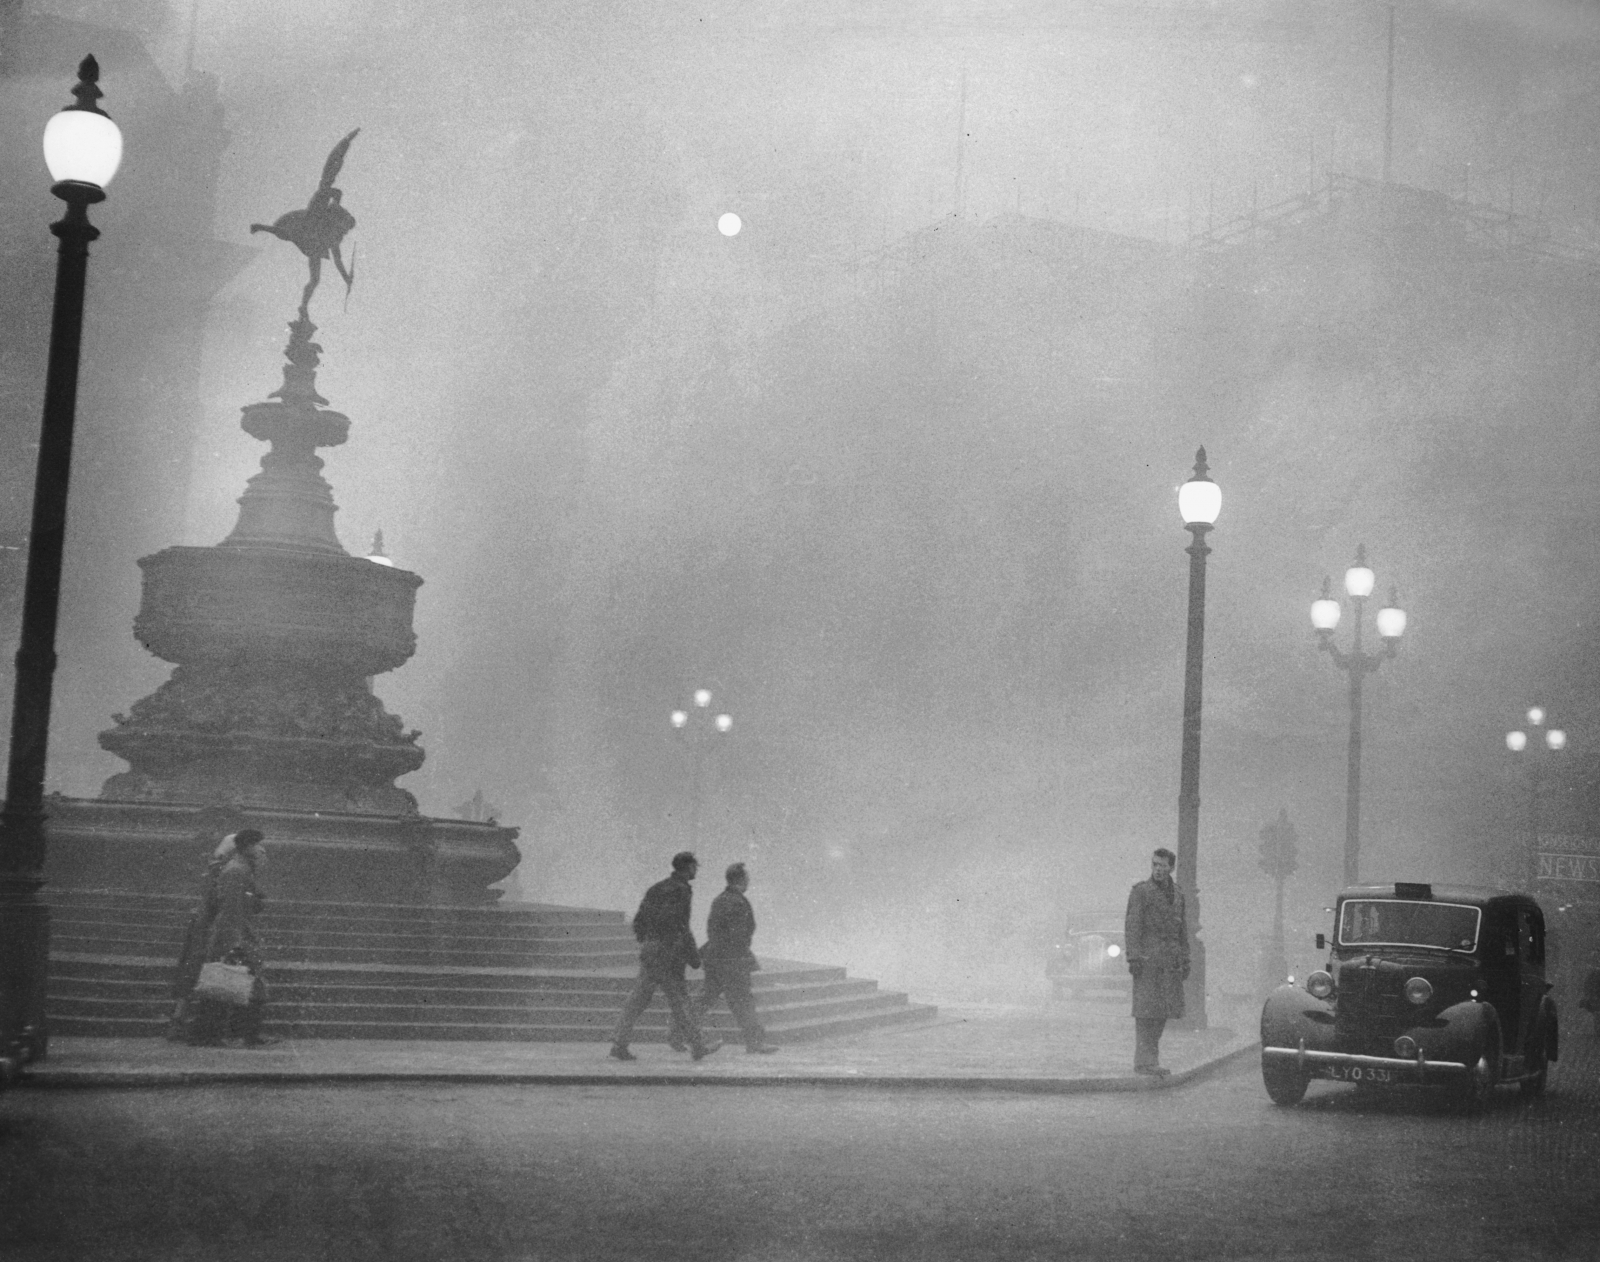 Piccadilly Circus in deadly London fog, 1952